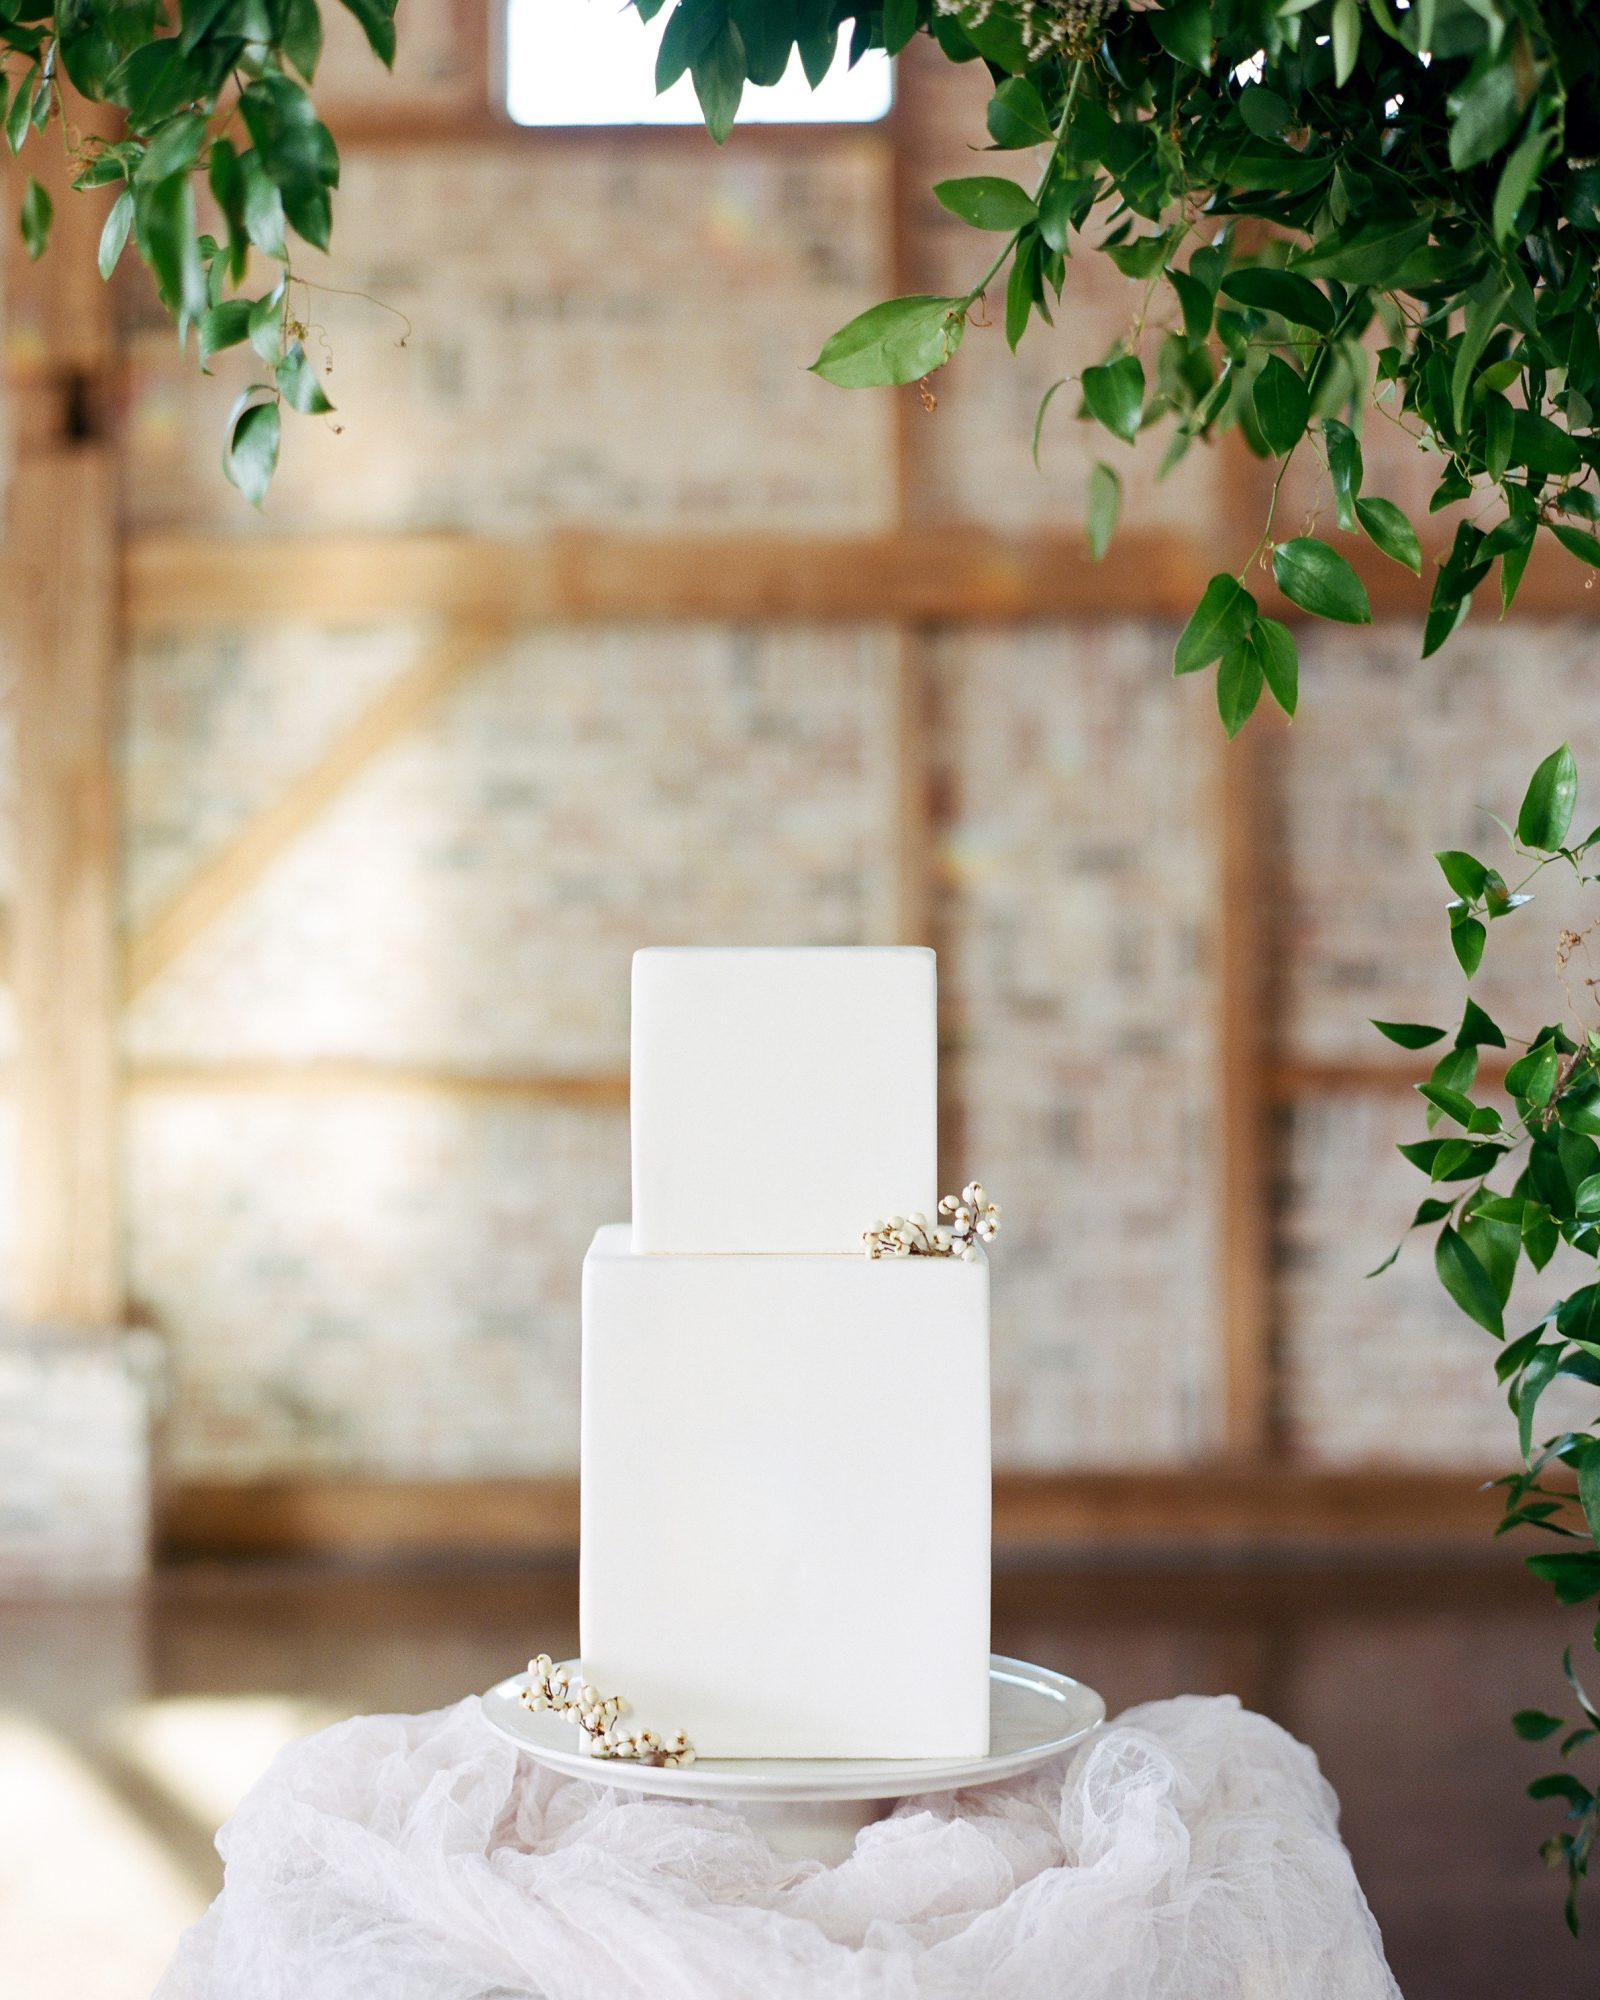 cubed wedding simple rectangular white cake